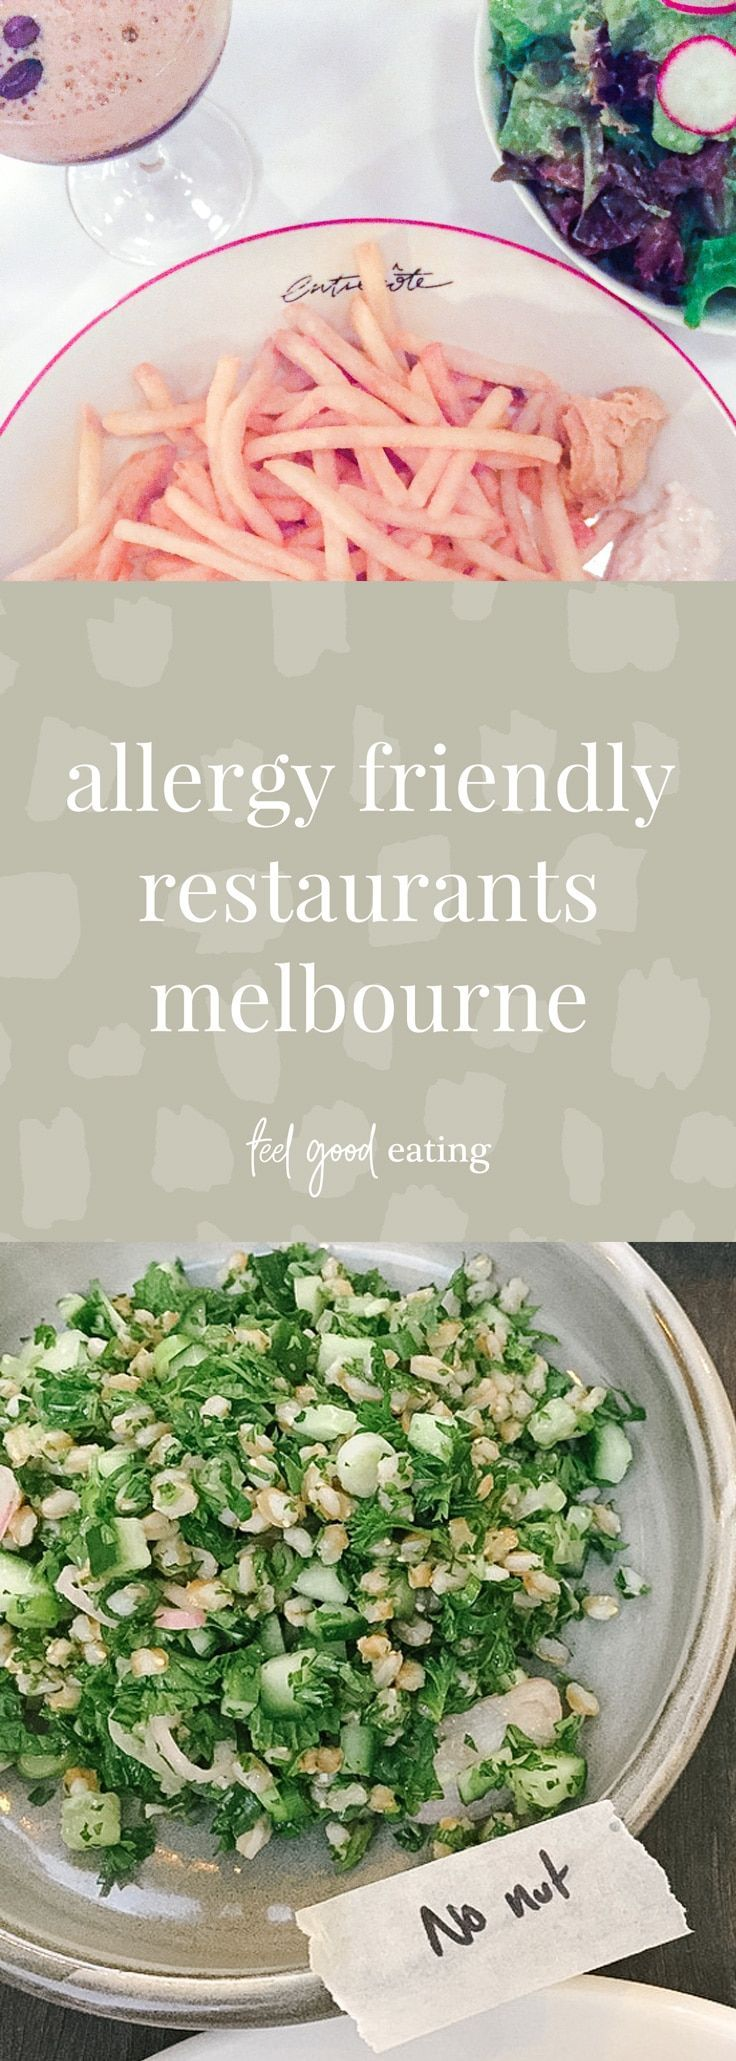 Allergy Friendly Restaurants Melbourne Allergy friendly